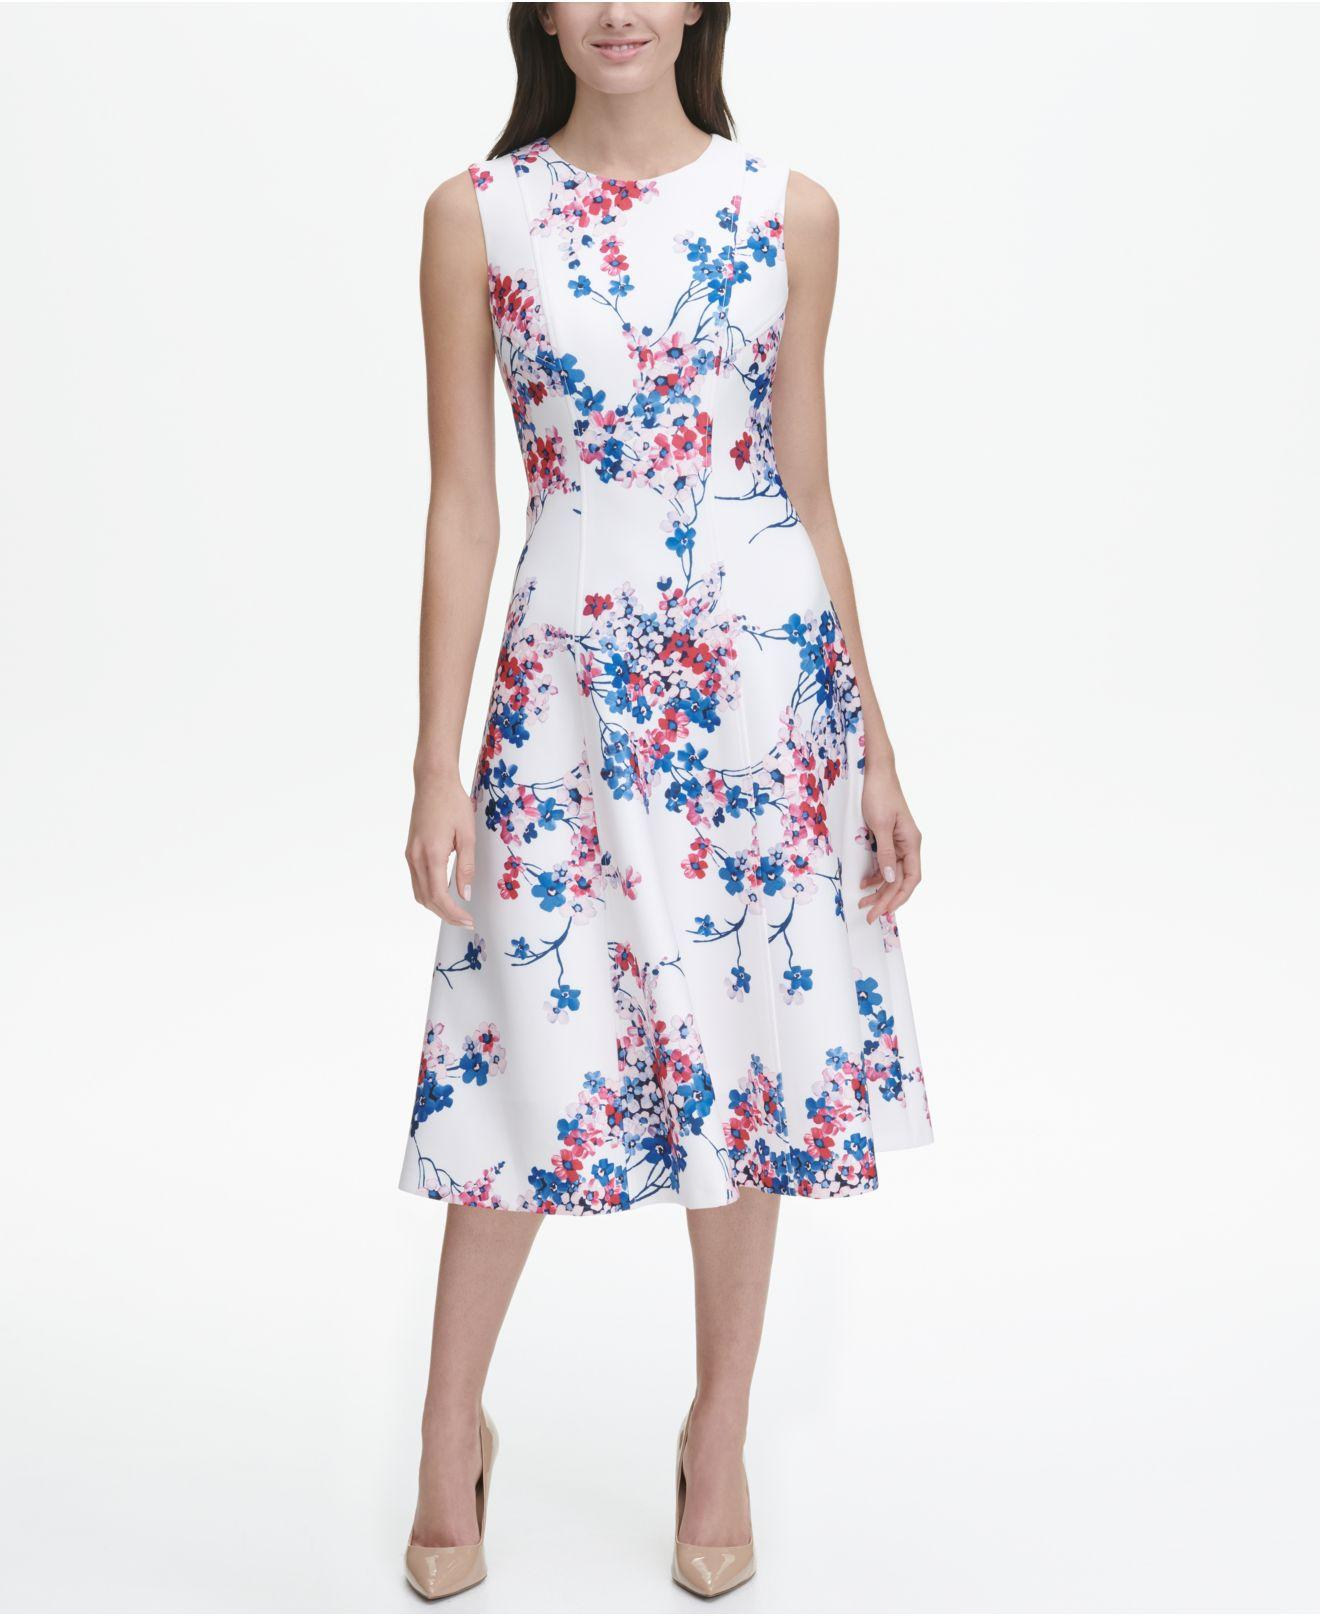 59653049dd90 Lyst - Tommy Hilfiger Eloise Floral Sleeveless Scuba Fit And Flare ...